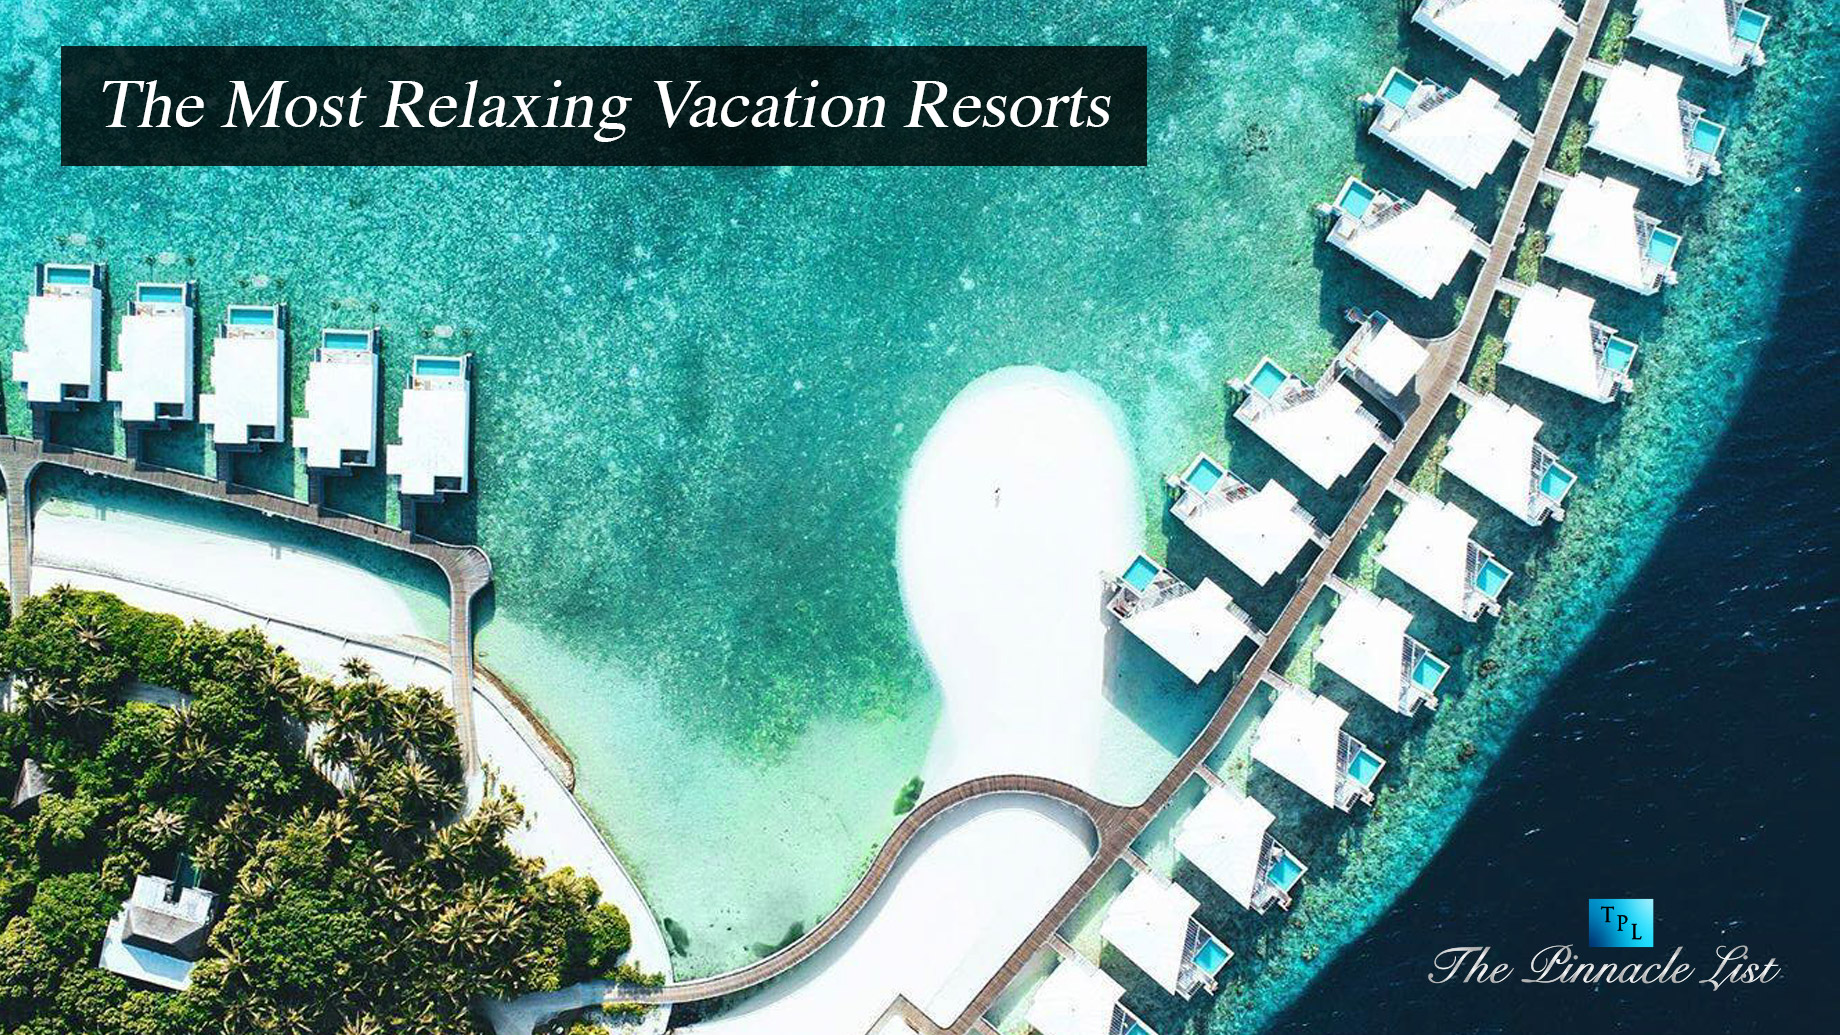 The Most Relaxing Vacation Resorts